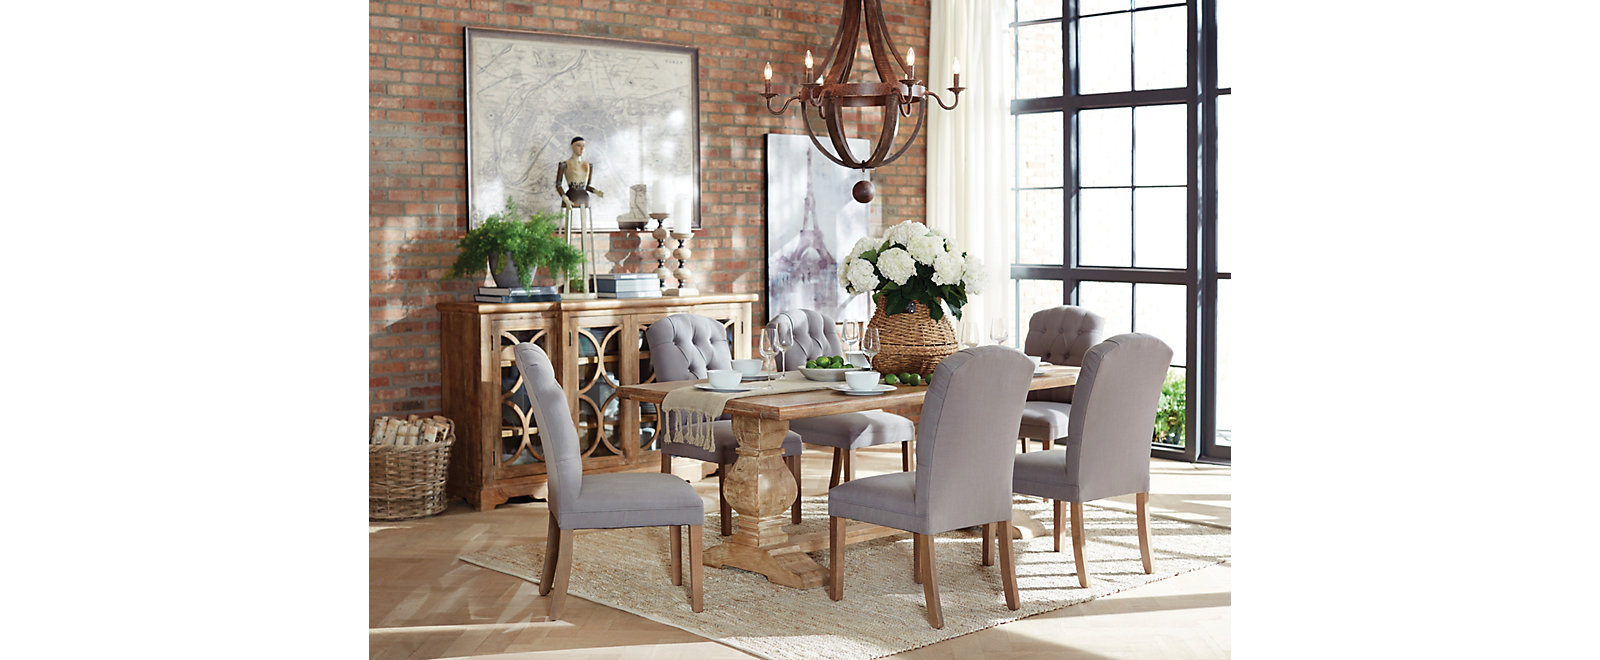 Ordinaire San Rafael Dining Collection, , Large